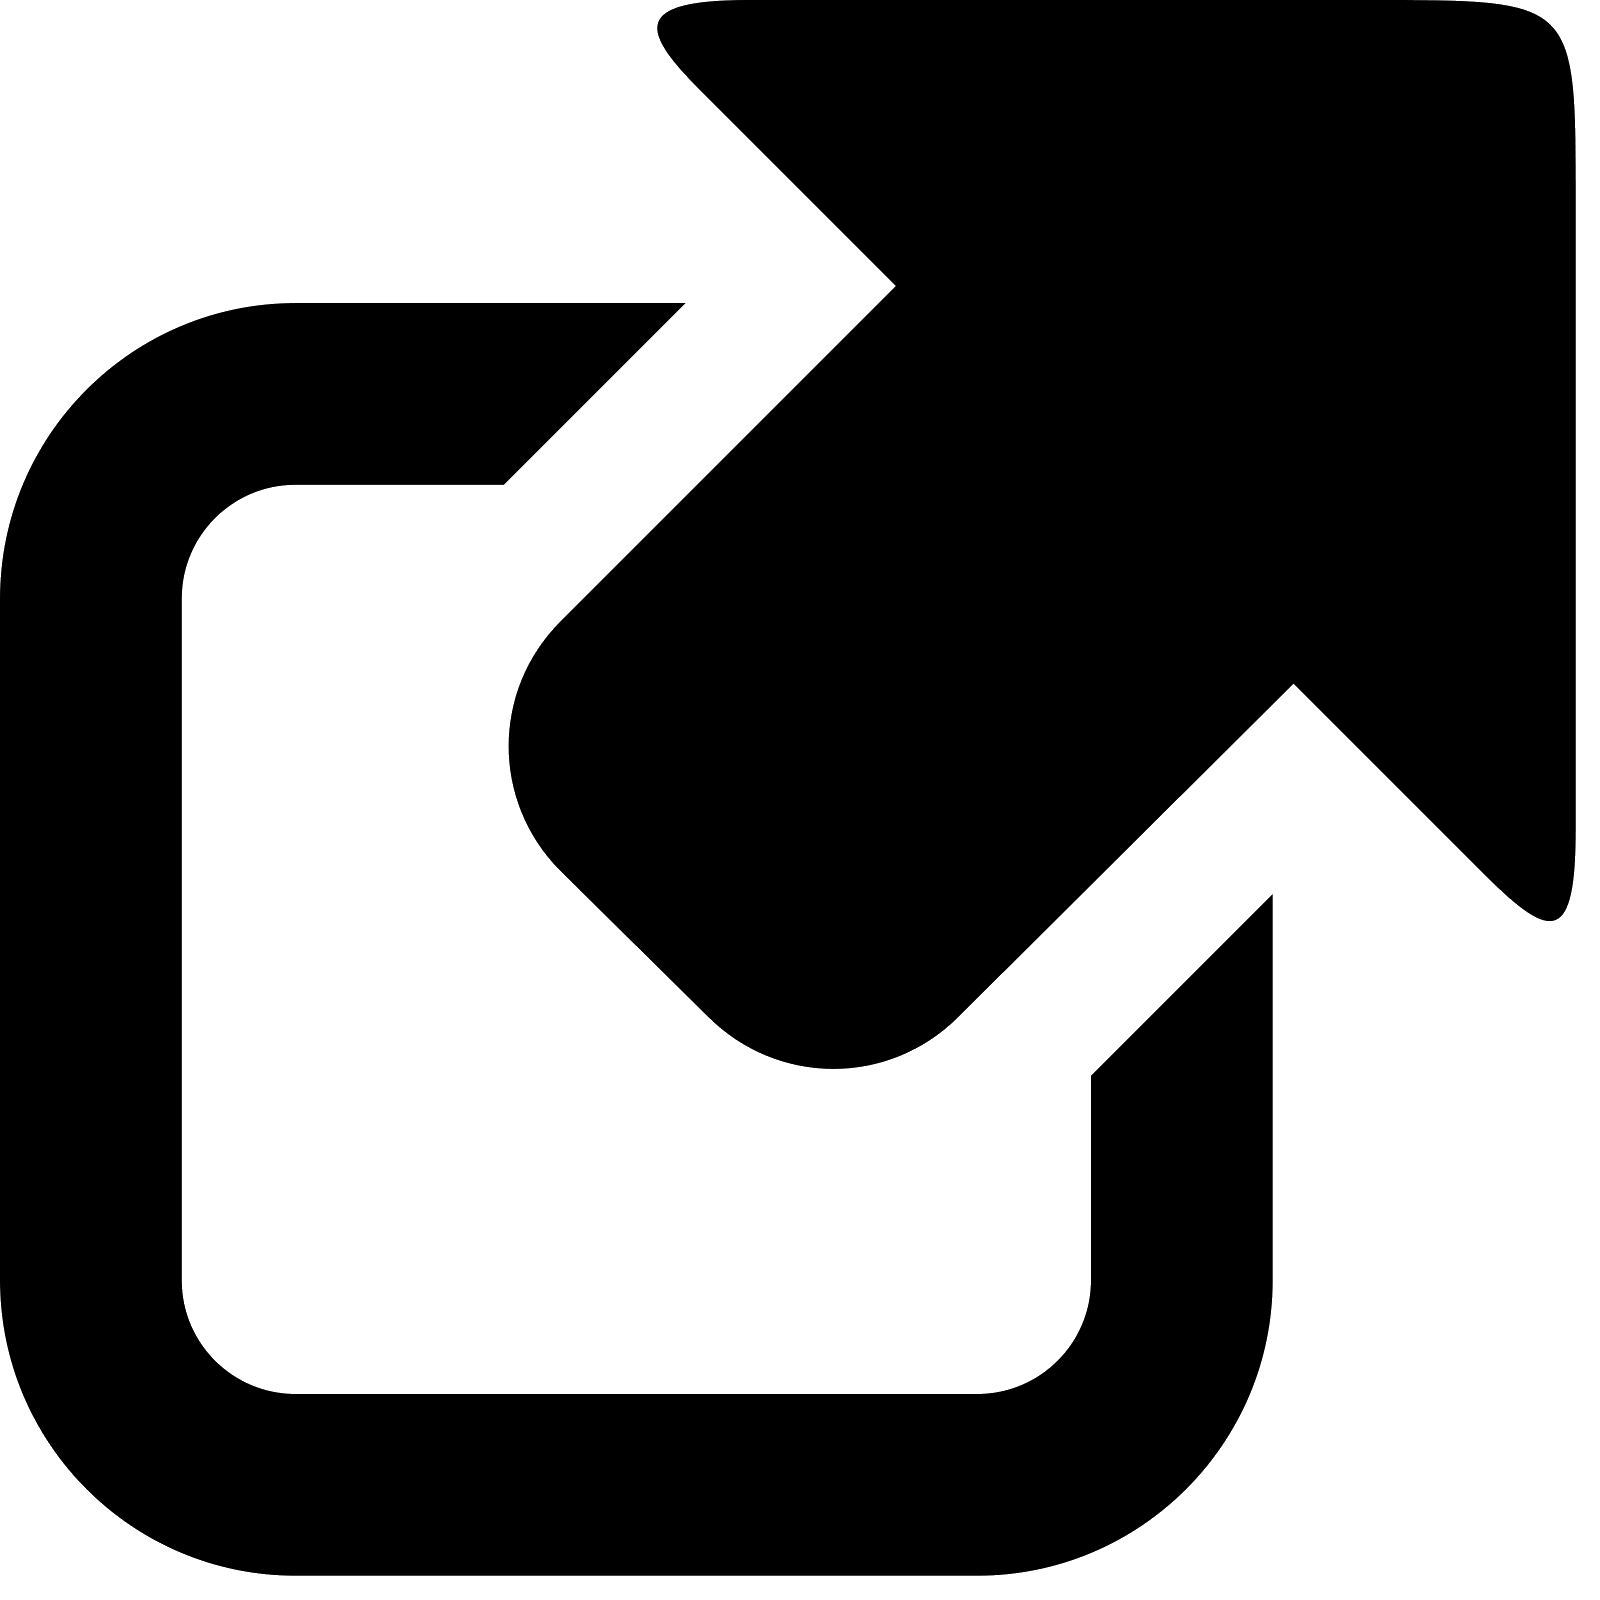 web link icon png